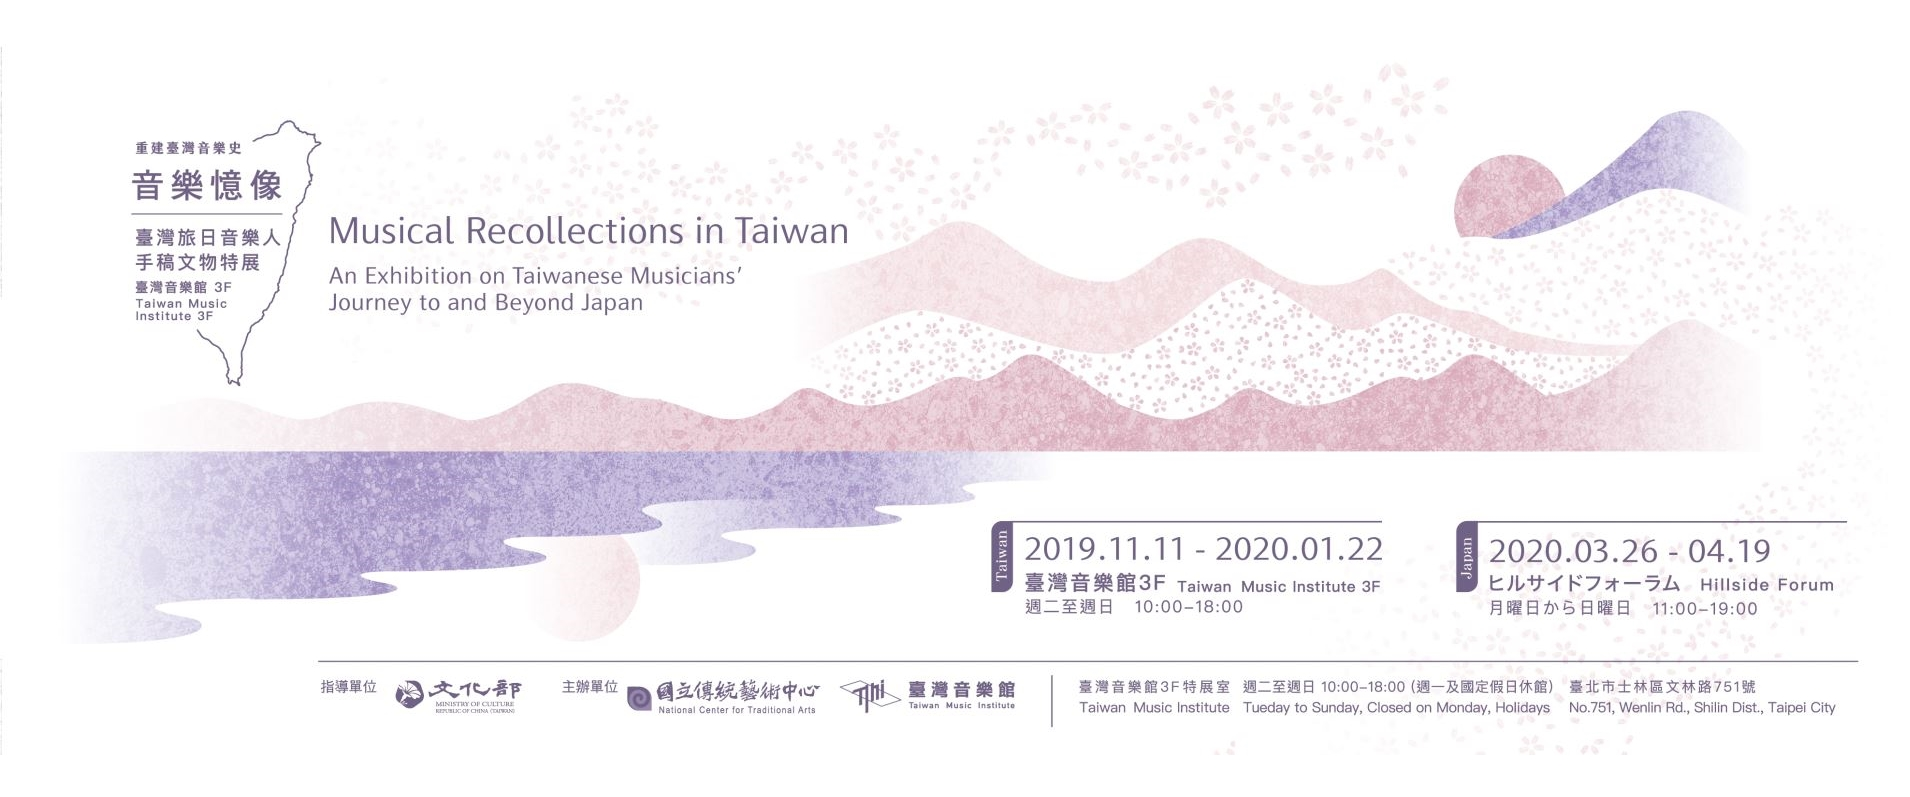 Musical Recollections in Taiwan[另開新視窗]